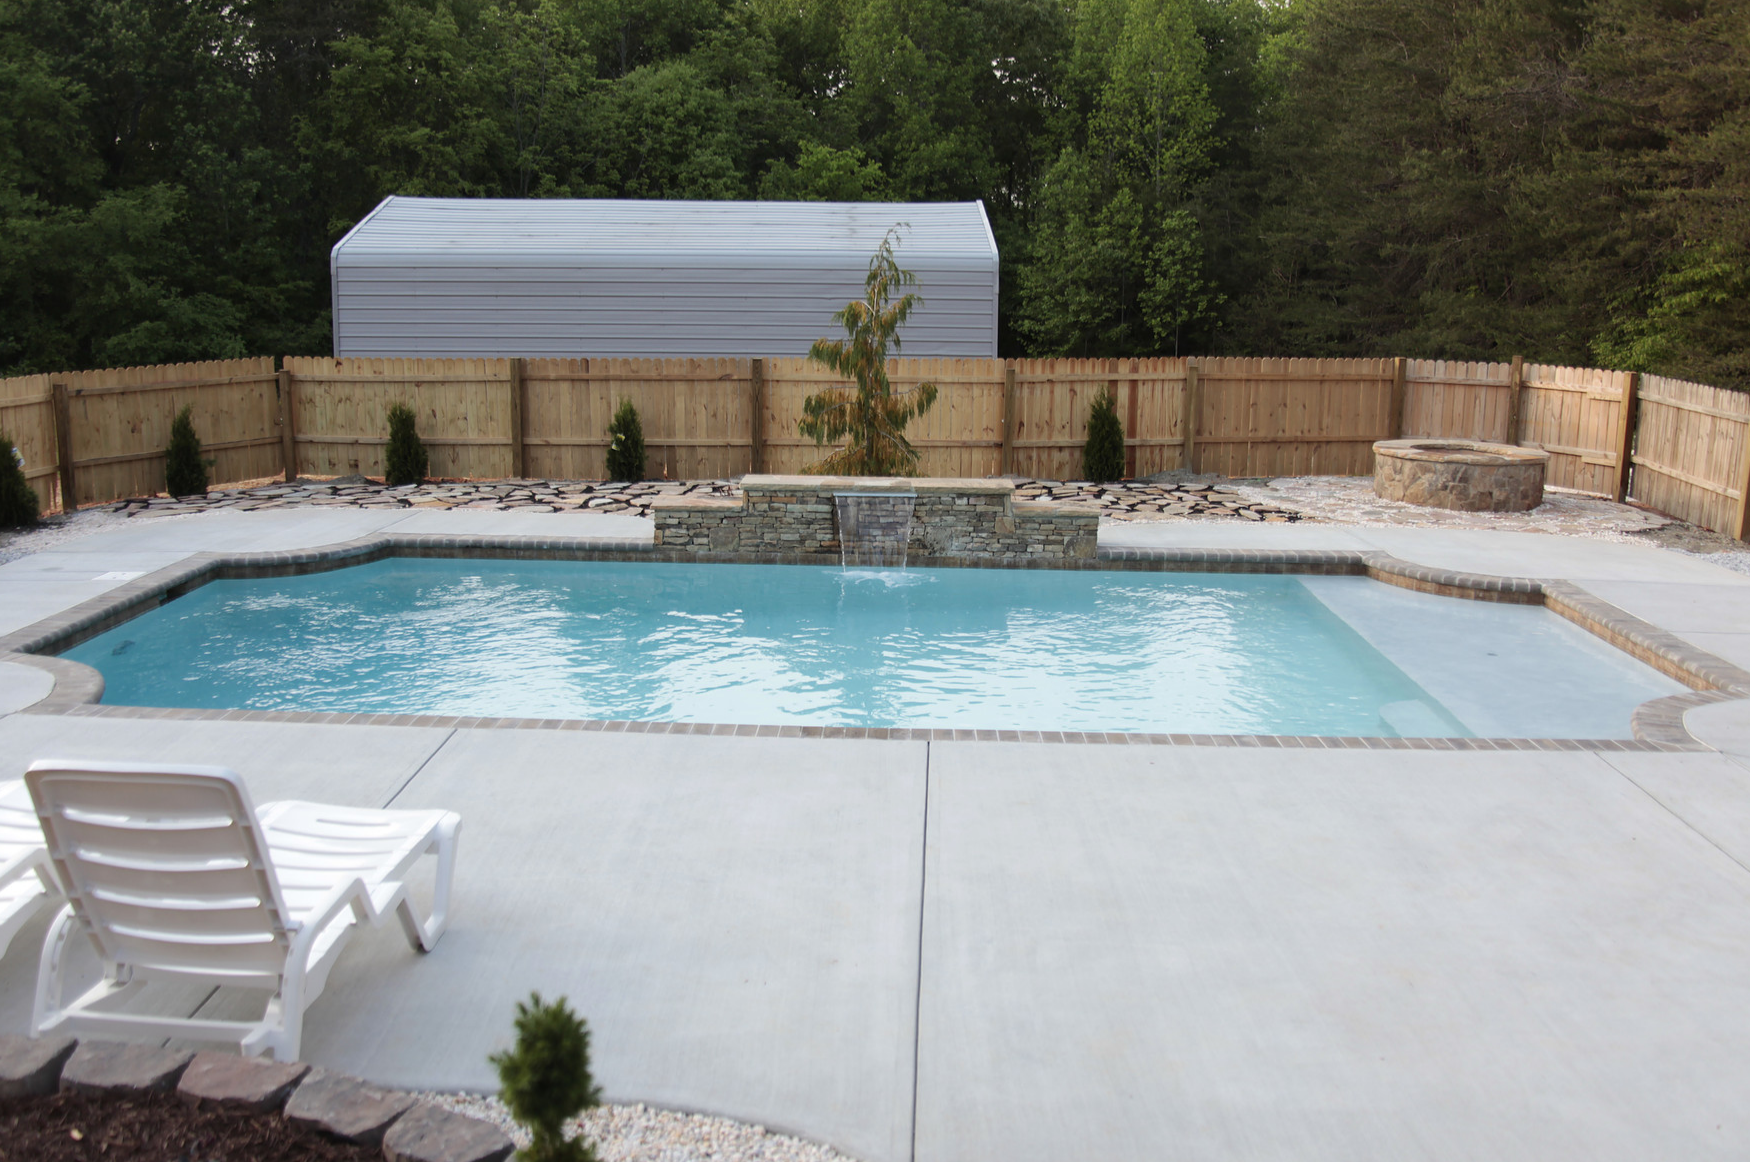 Fiberglass swimming pools vs concrete swimming pools which for Concrete swimming pool